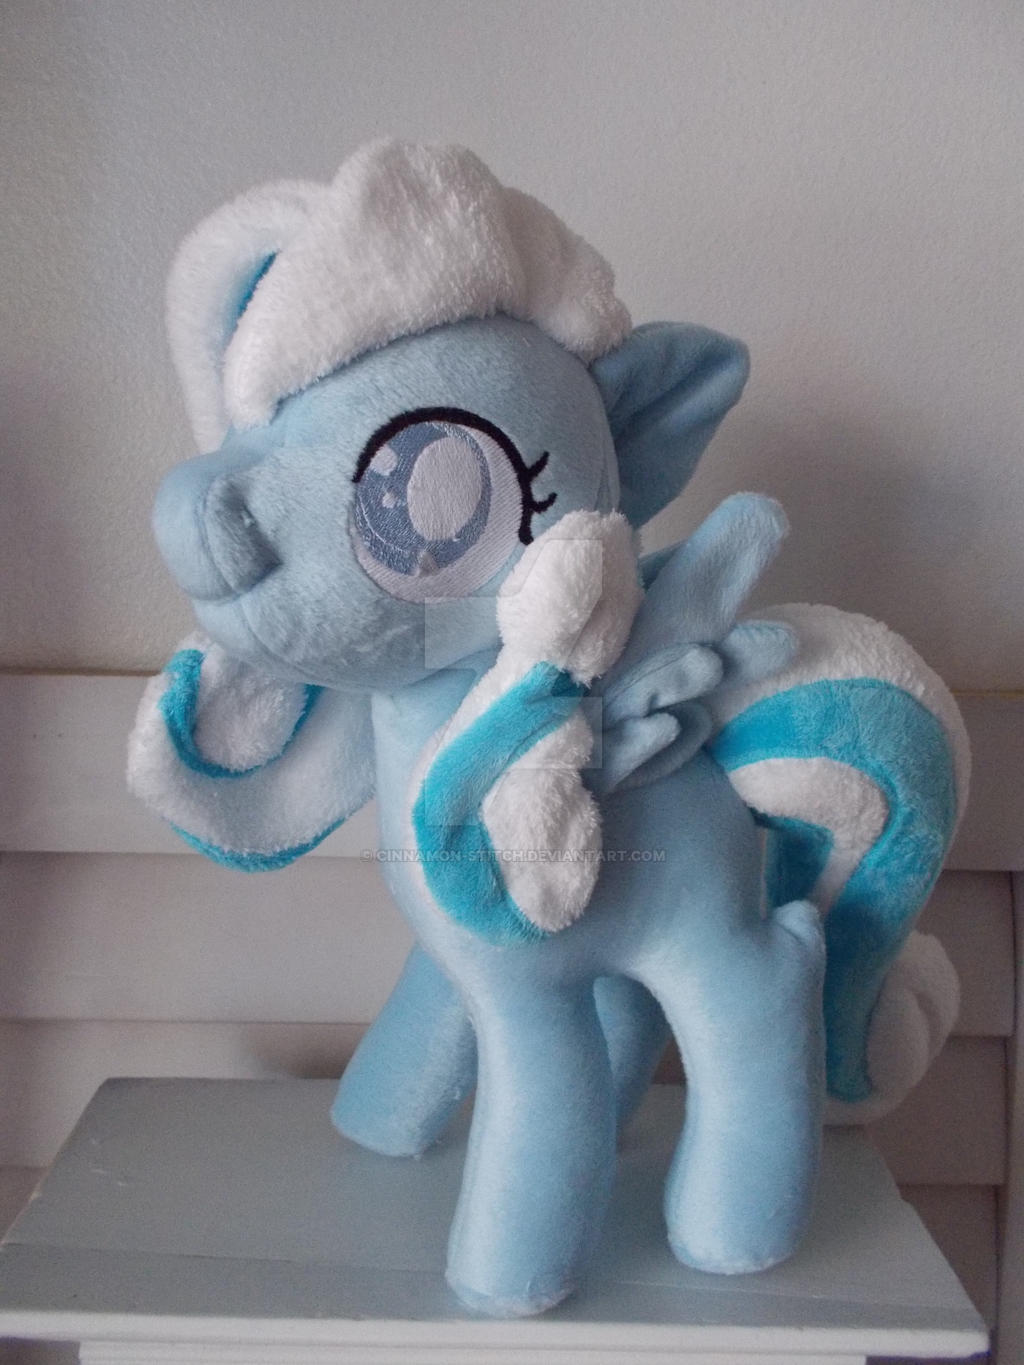 My little pony Oc Snowdrop by CINNAMON-STITCH